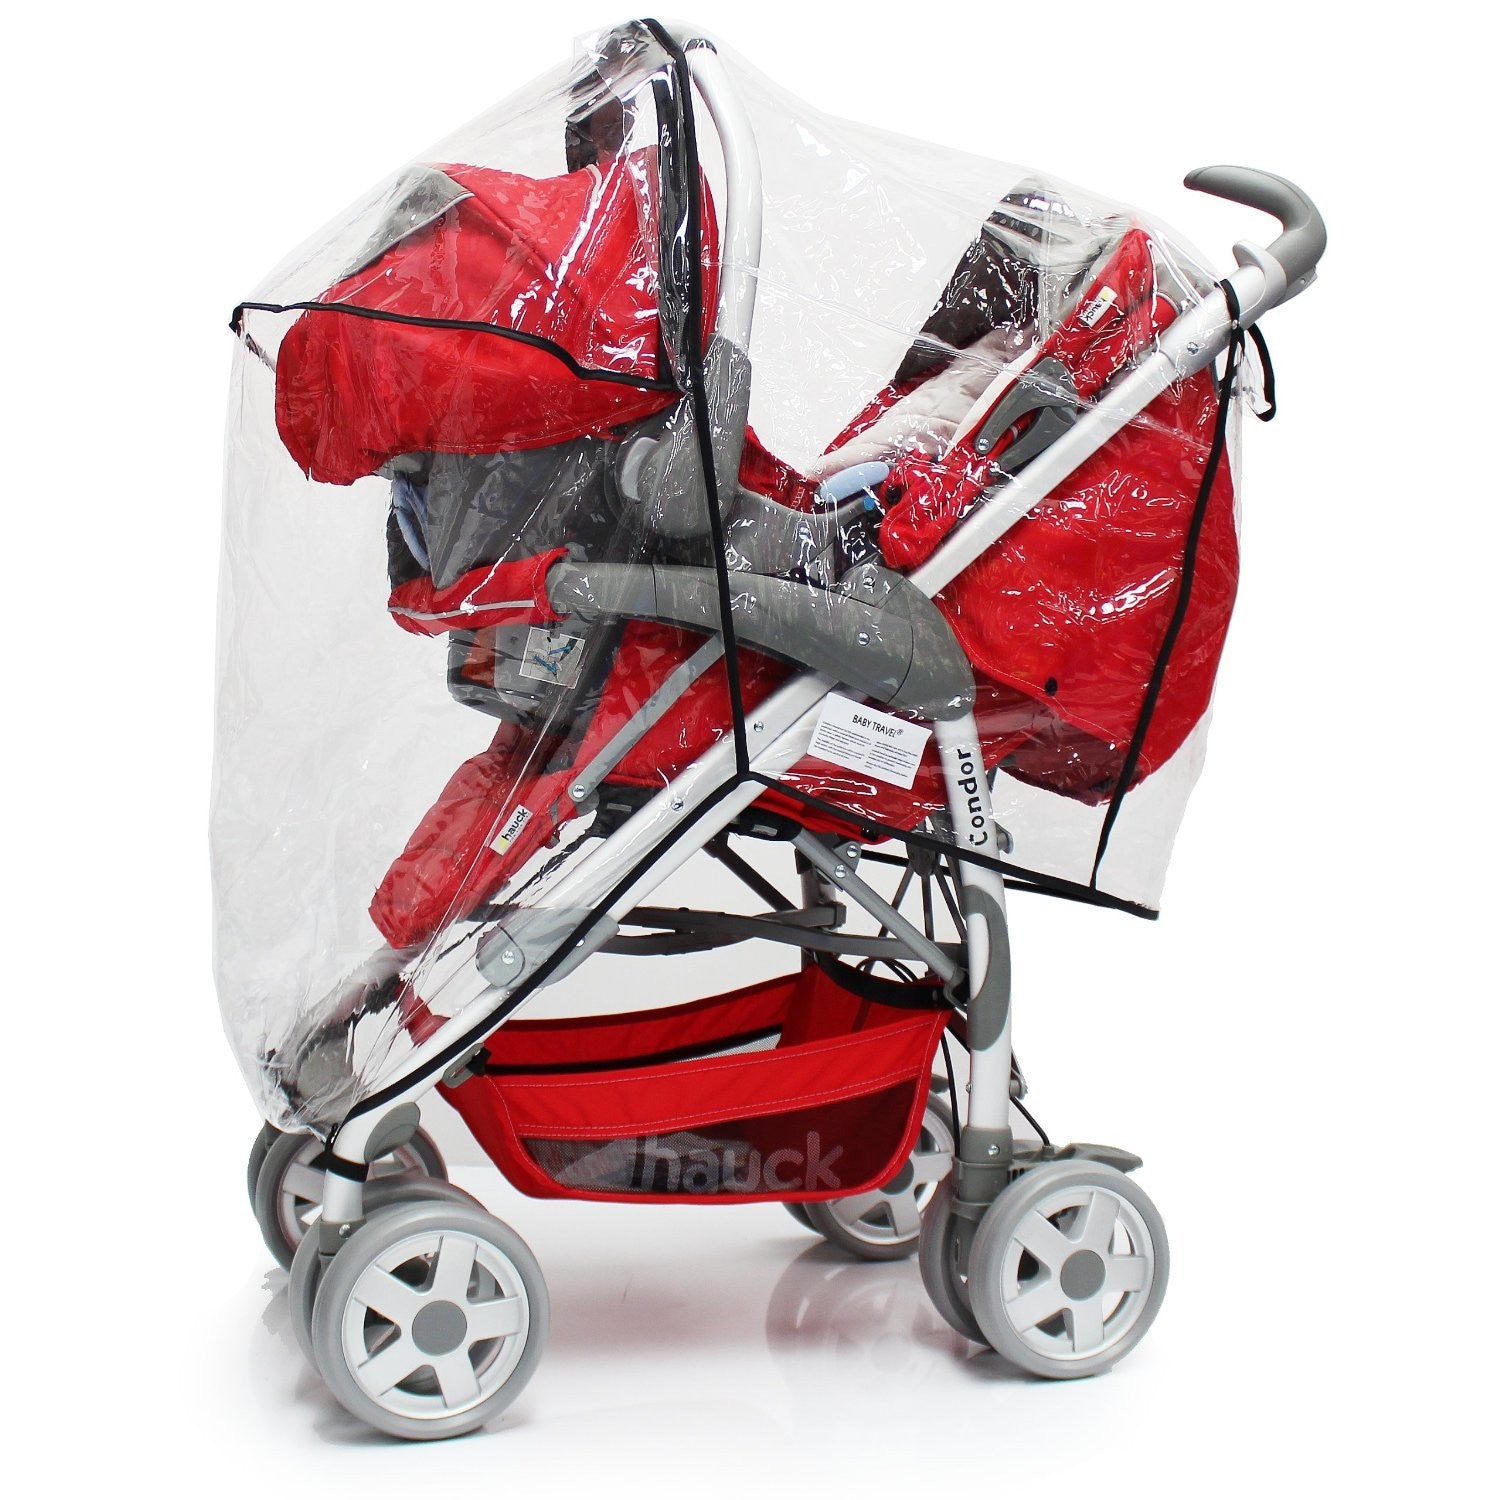 Hauck Condor All In One Travel System Reviews